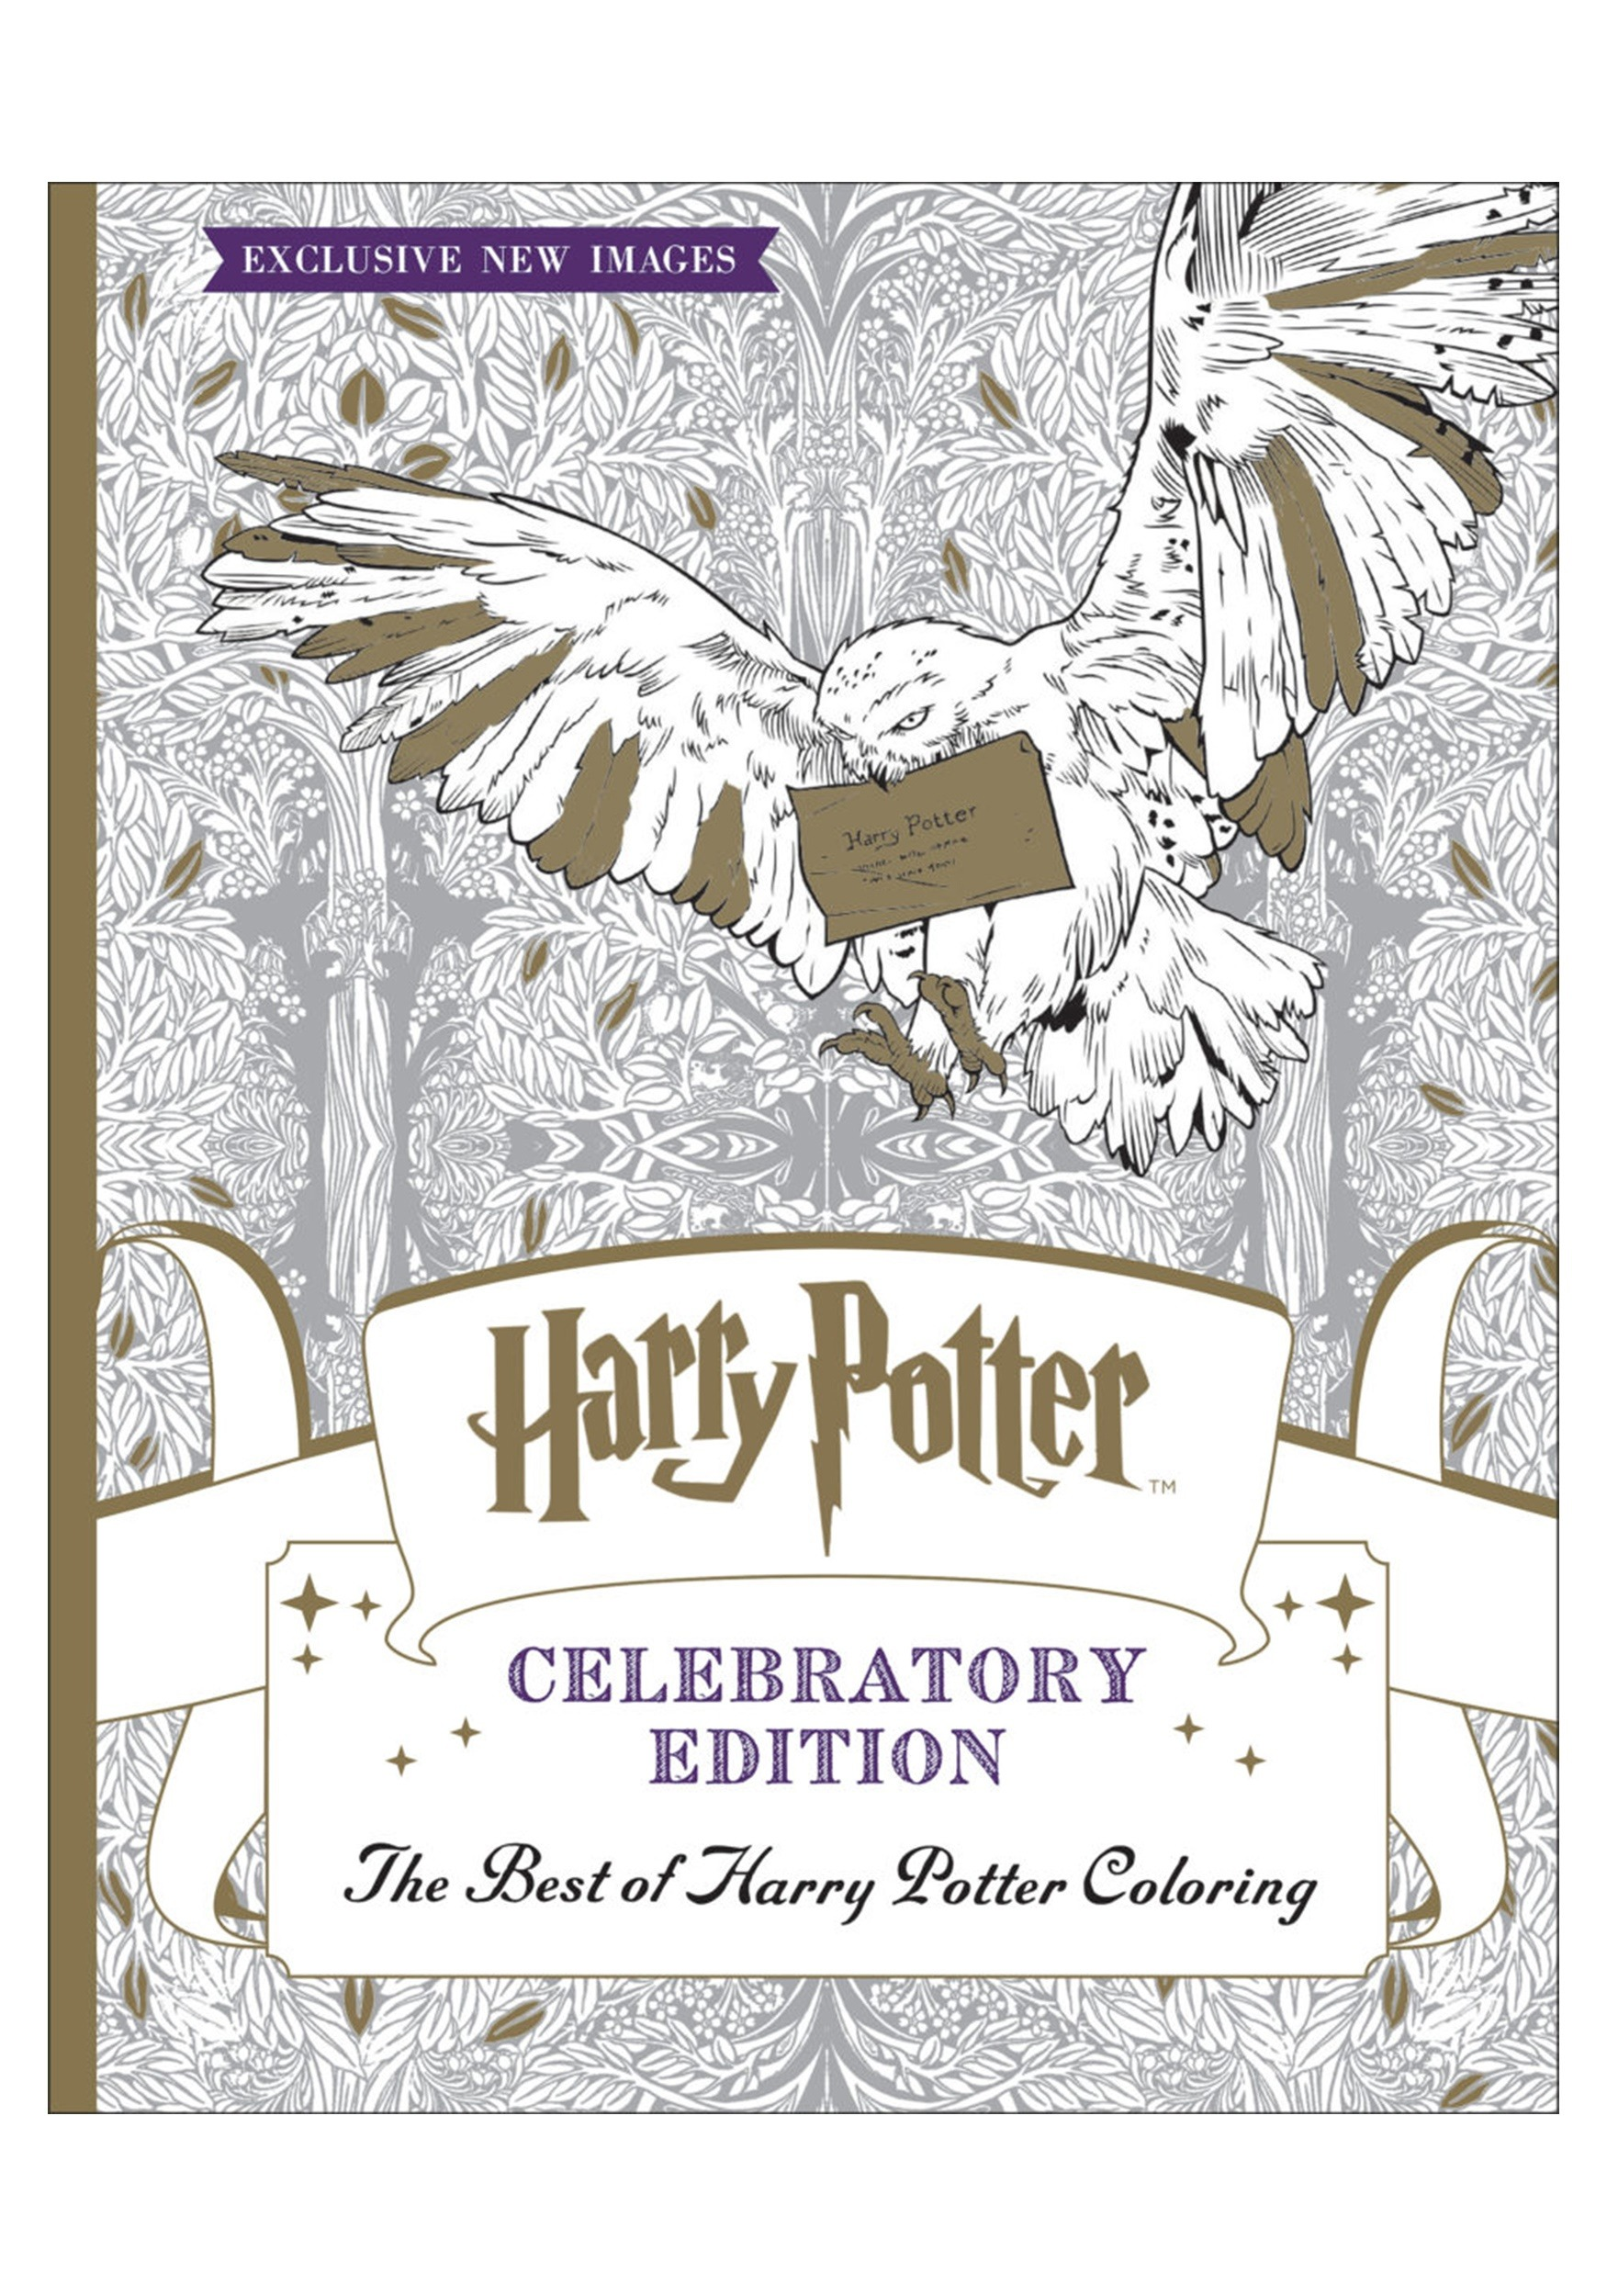 The Best of Harry Potter Coloring Book Celebratory Edition